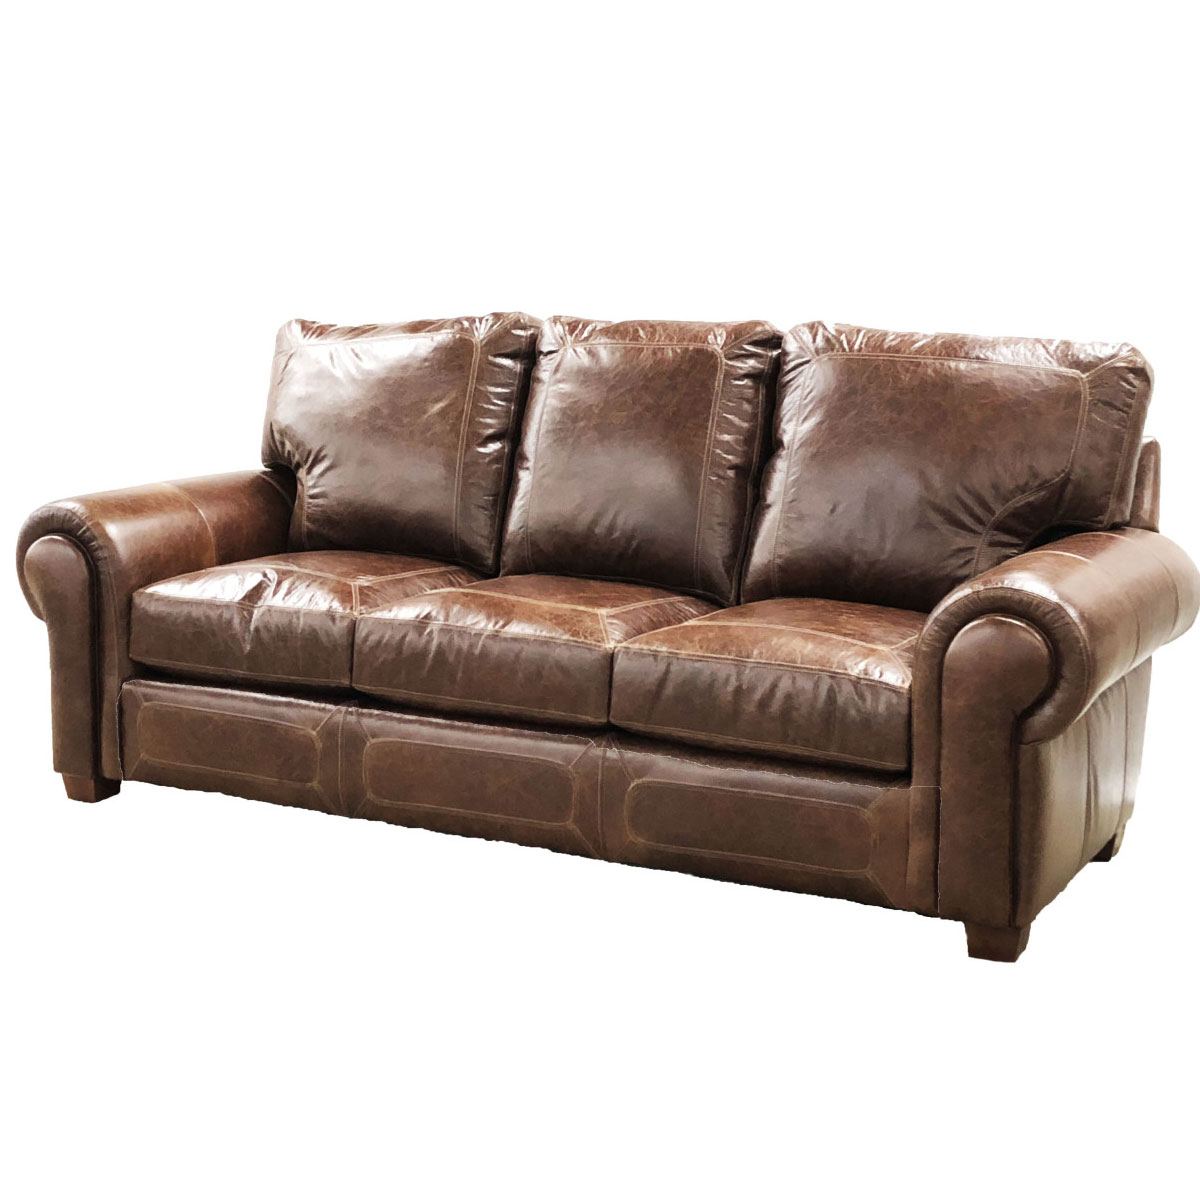 CC Leather 540 Dallas Sofa - Ohio Hardwood Furniture